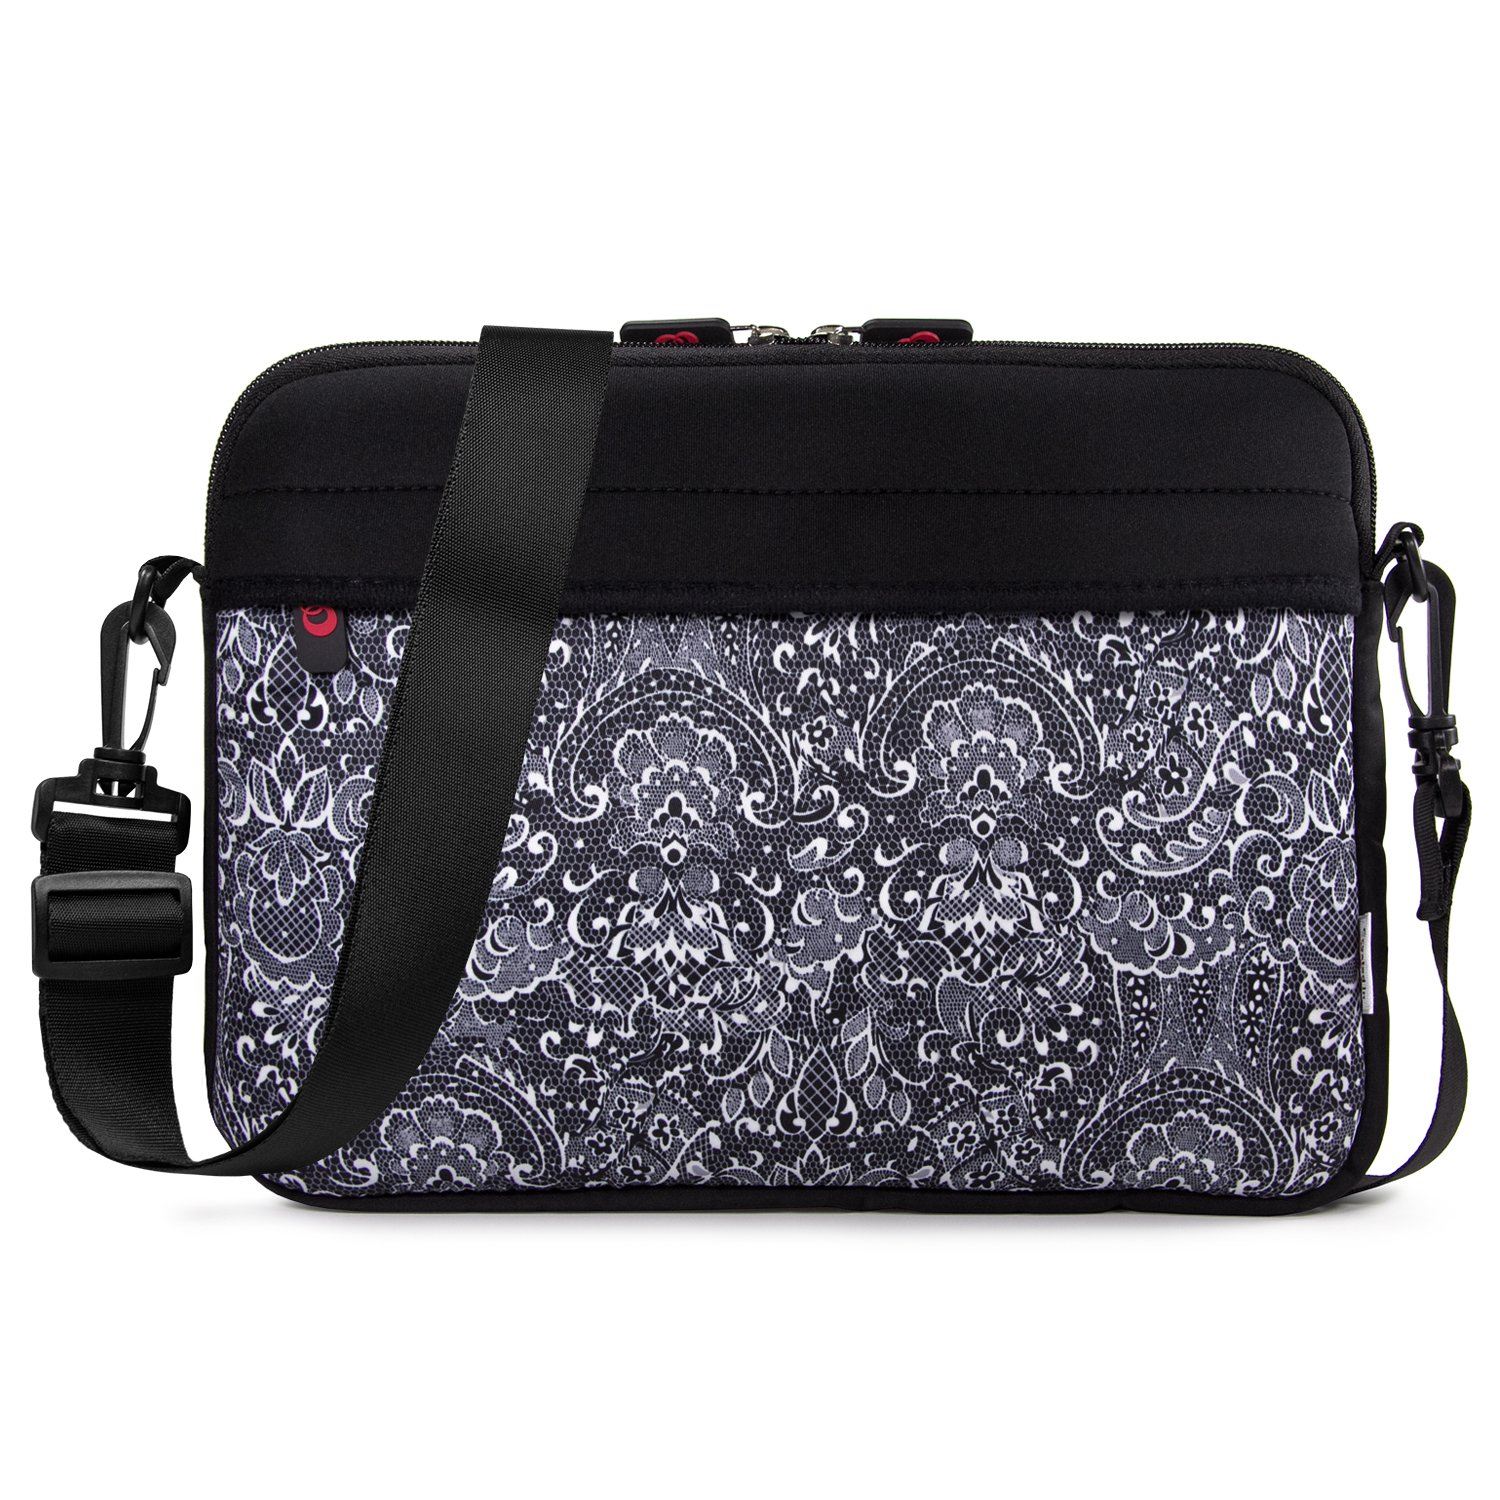 6f0e122cd918 7-9 inch Slim Neoprene Messenger Tablet Bag, Water Resistant Cover Sleeve  Case for Apple iPad Air, iPad Mini 4, Samsung Galaxy Tab, Insignia Tablets  ...